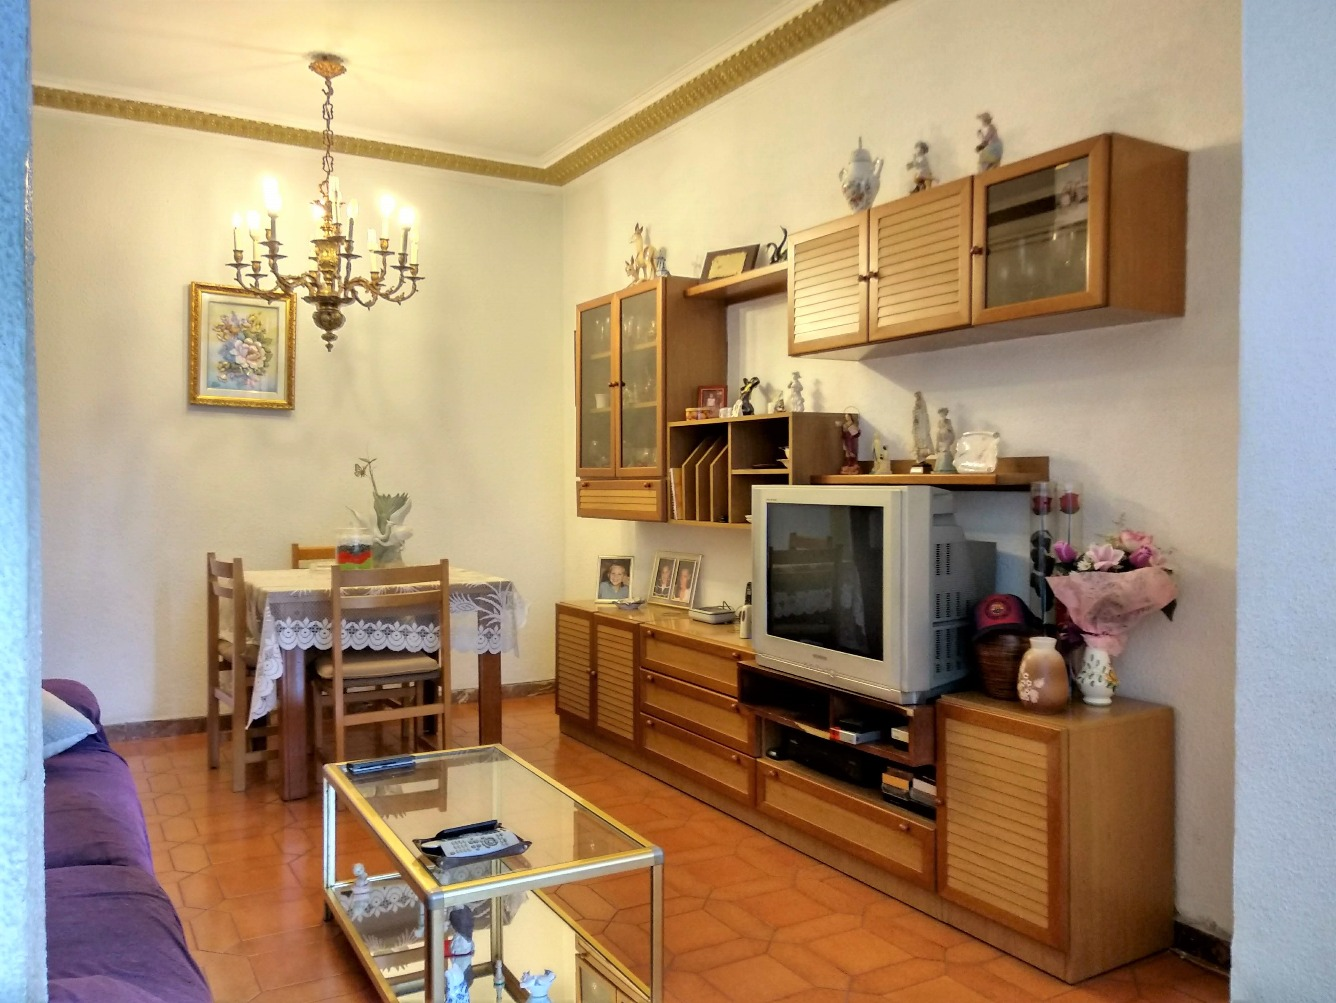 Apartment in Barcelona - eixample. 3 bedrooms. For sale: 330.000 €.